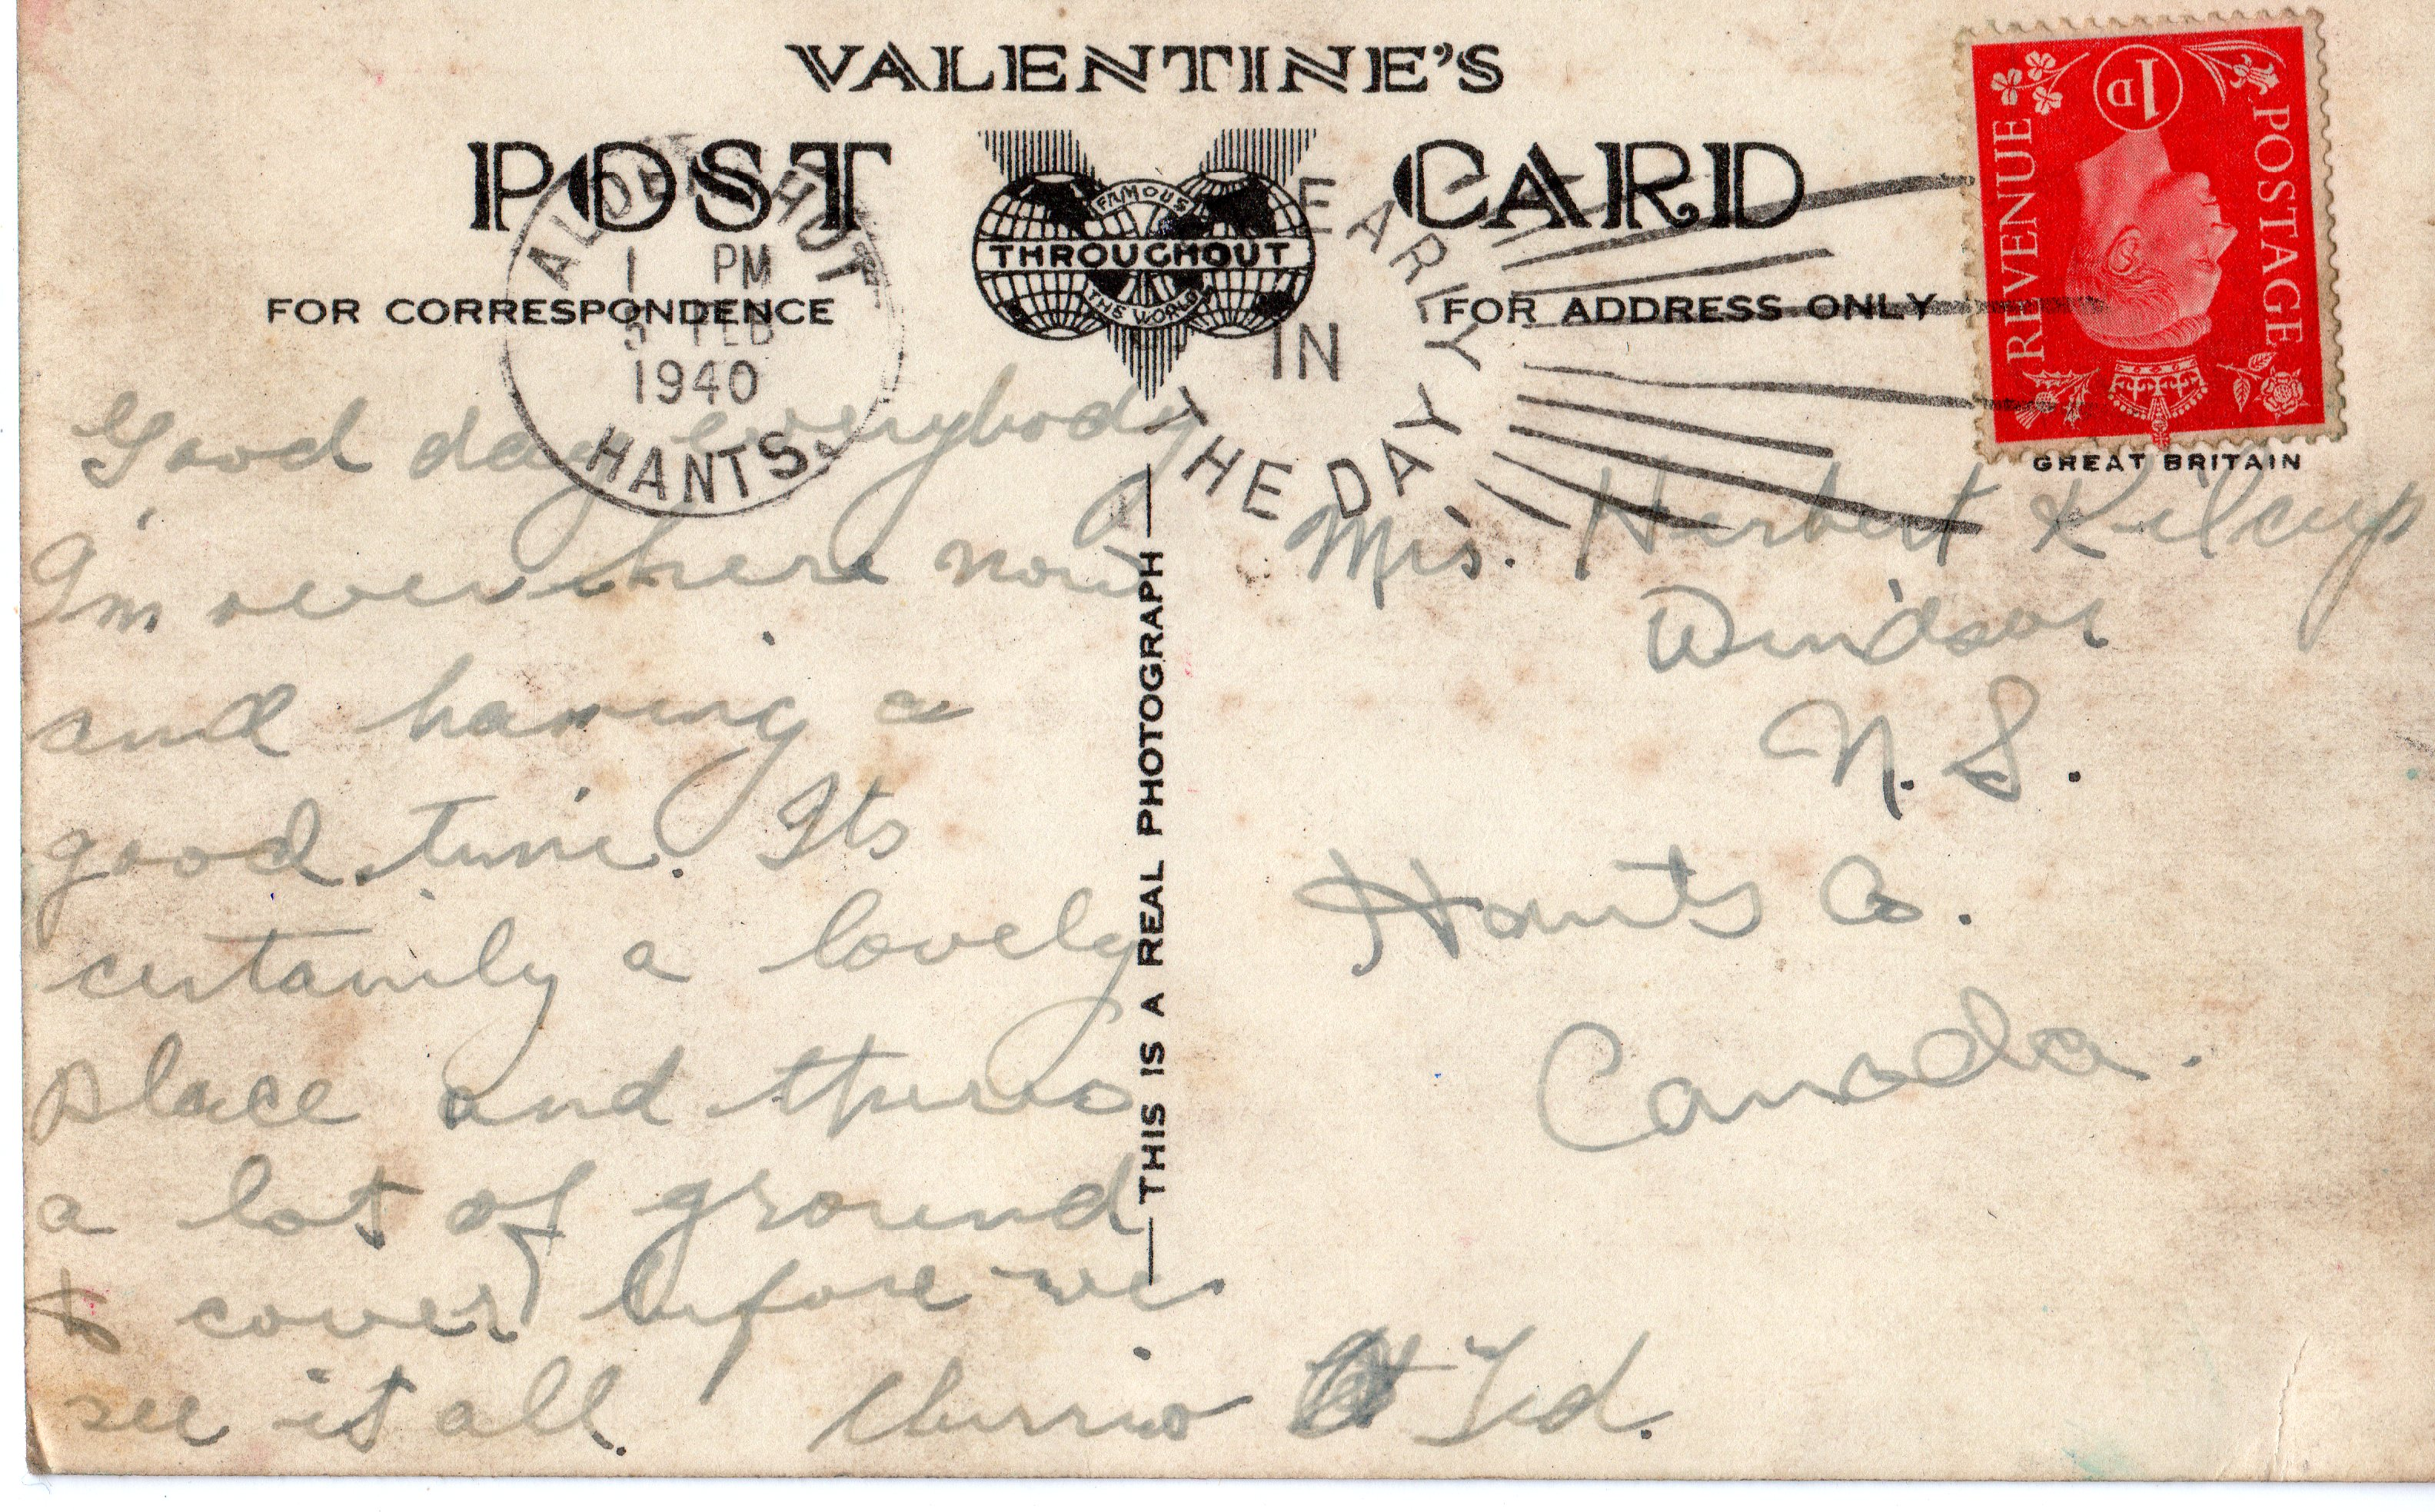 Post Card– February 1940 postcard from England to grandmother.